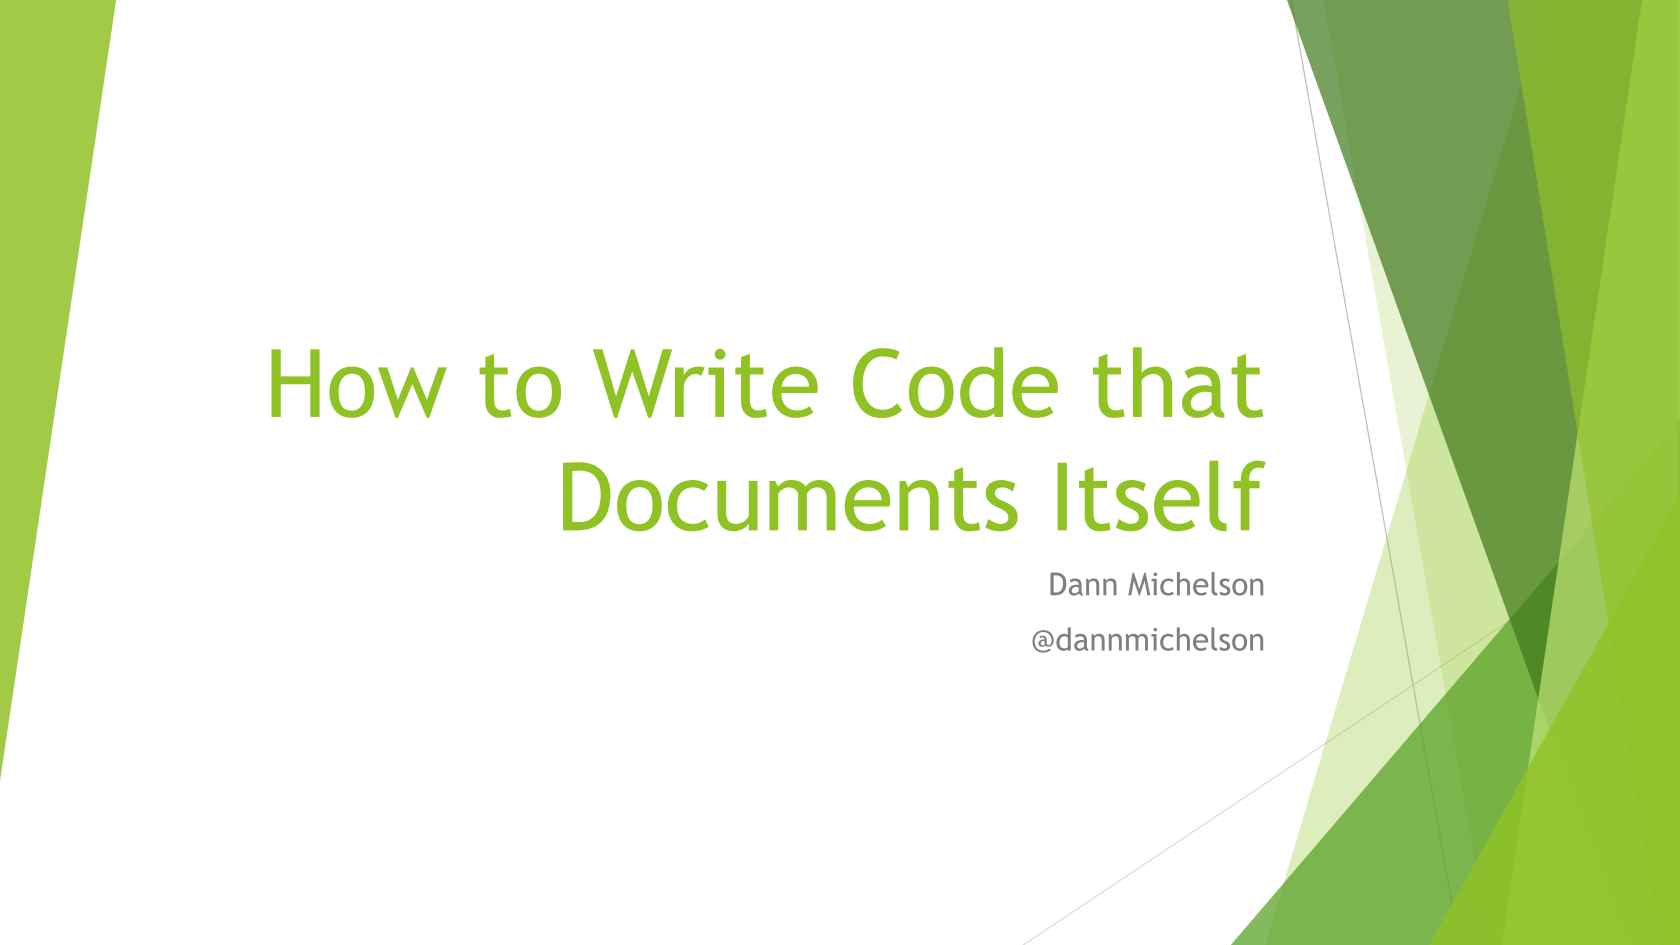 How to Write Code That Documents Itself